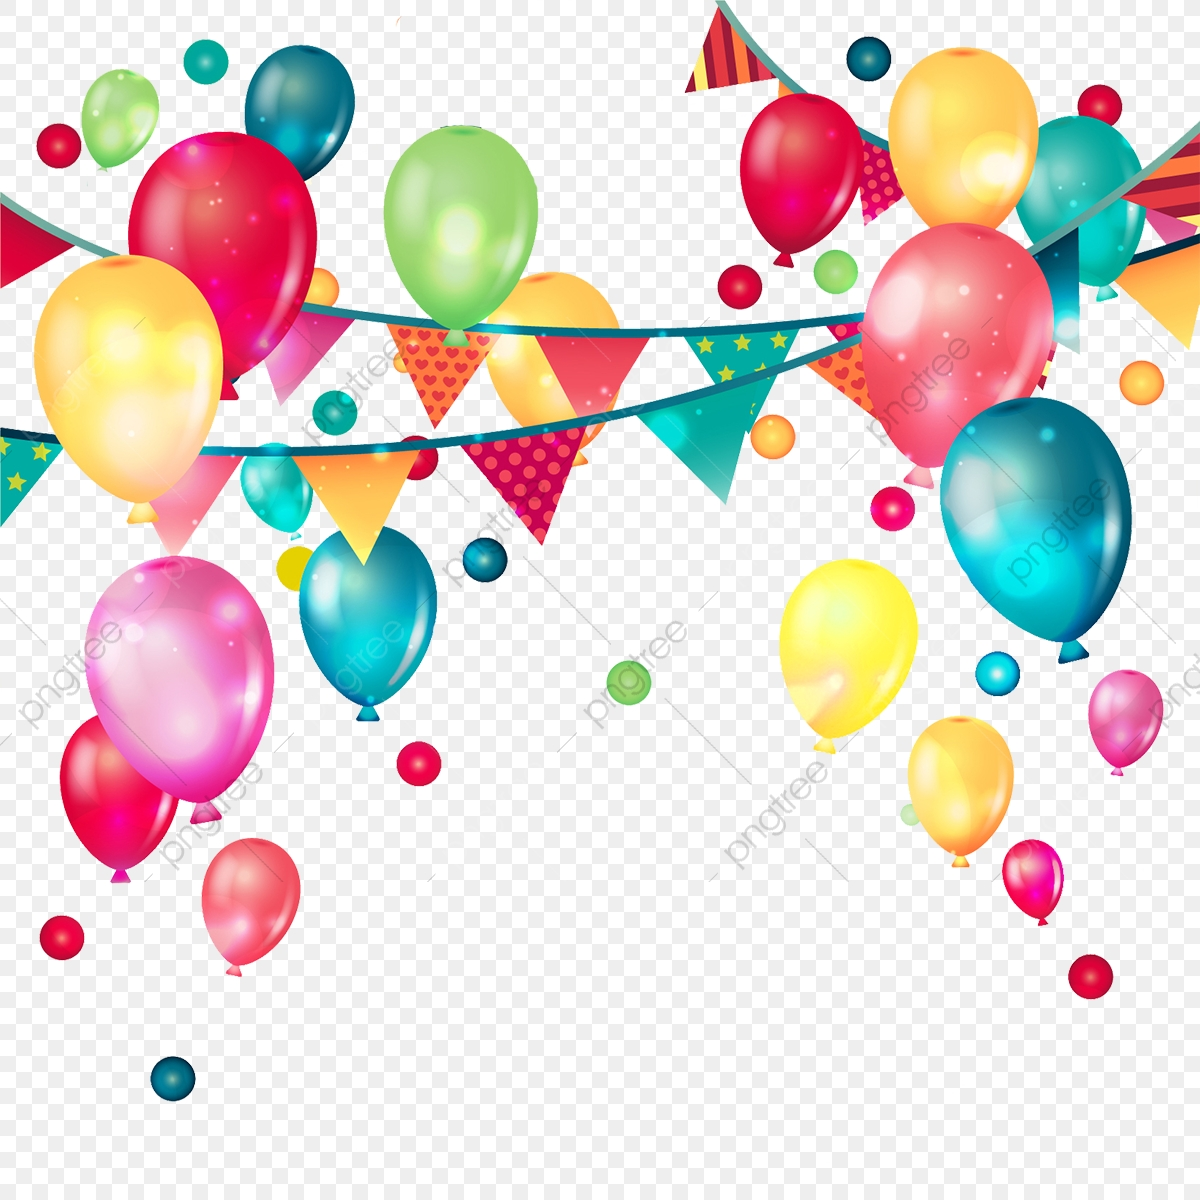 Balloon Clipart Download Free Transparent Png Format Clipart Images On Pngtree